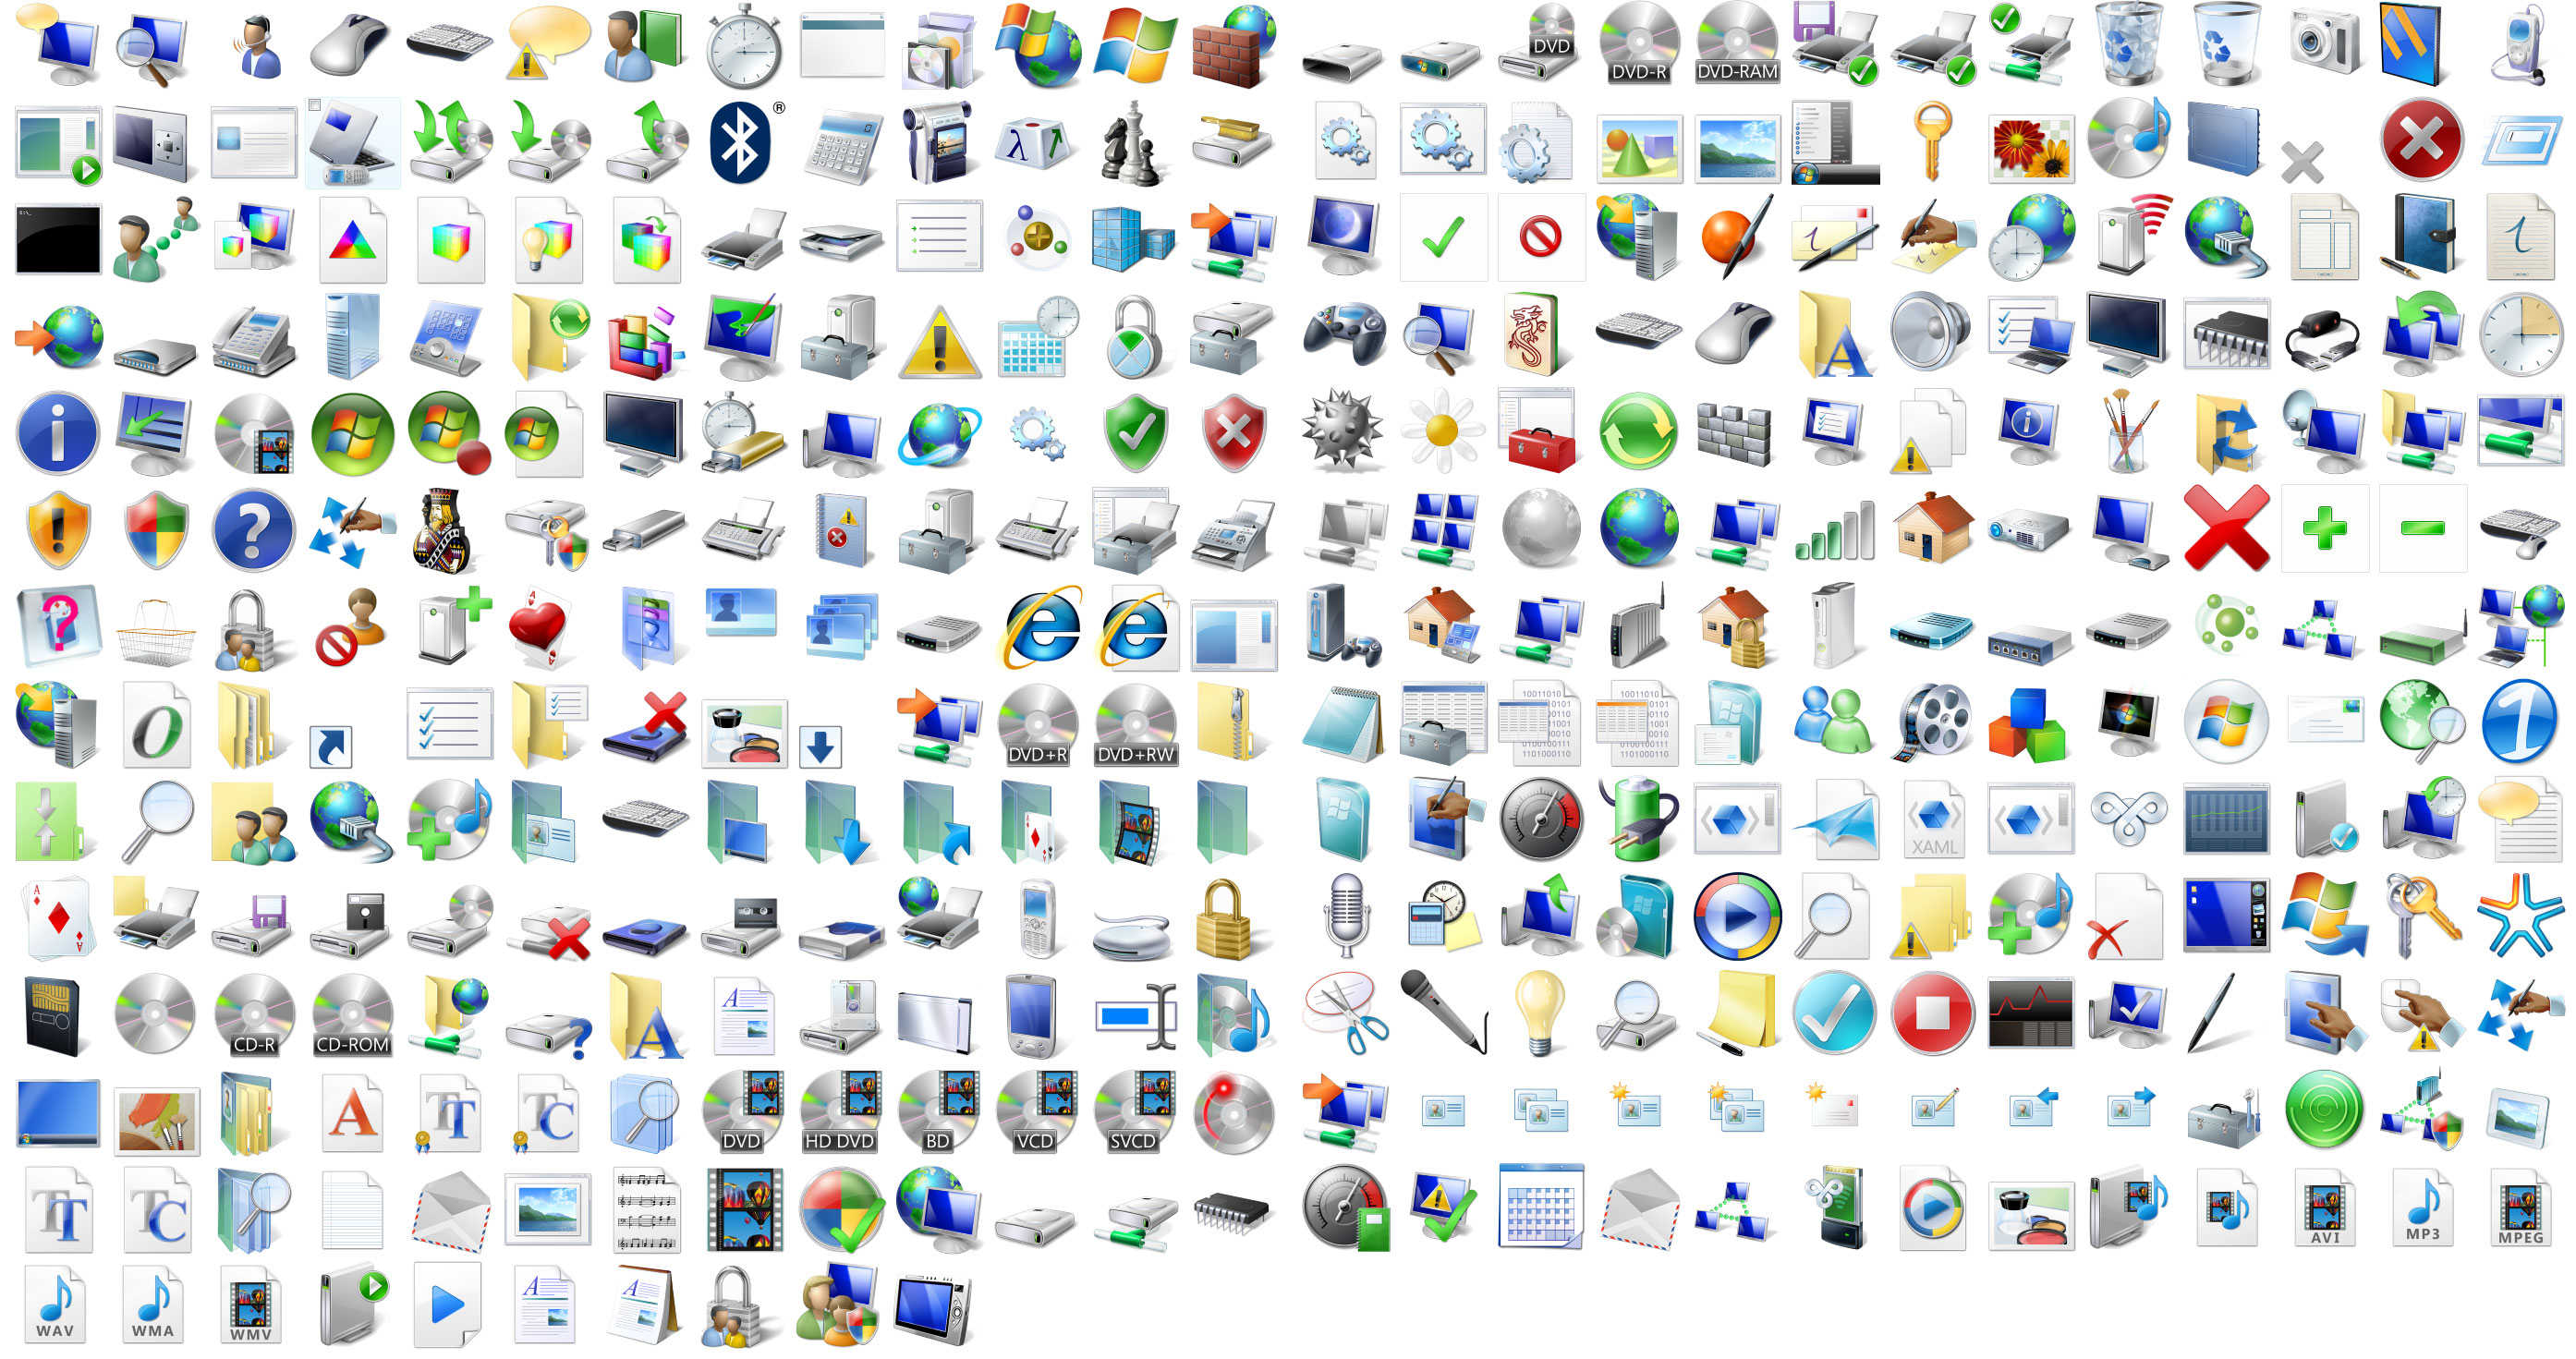 19 Free Windows Icons Download Images